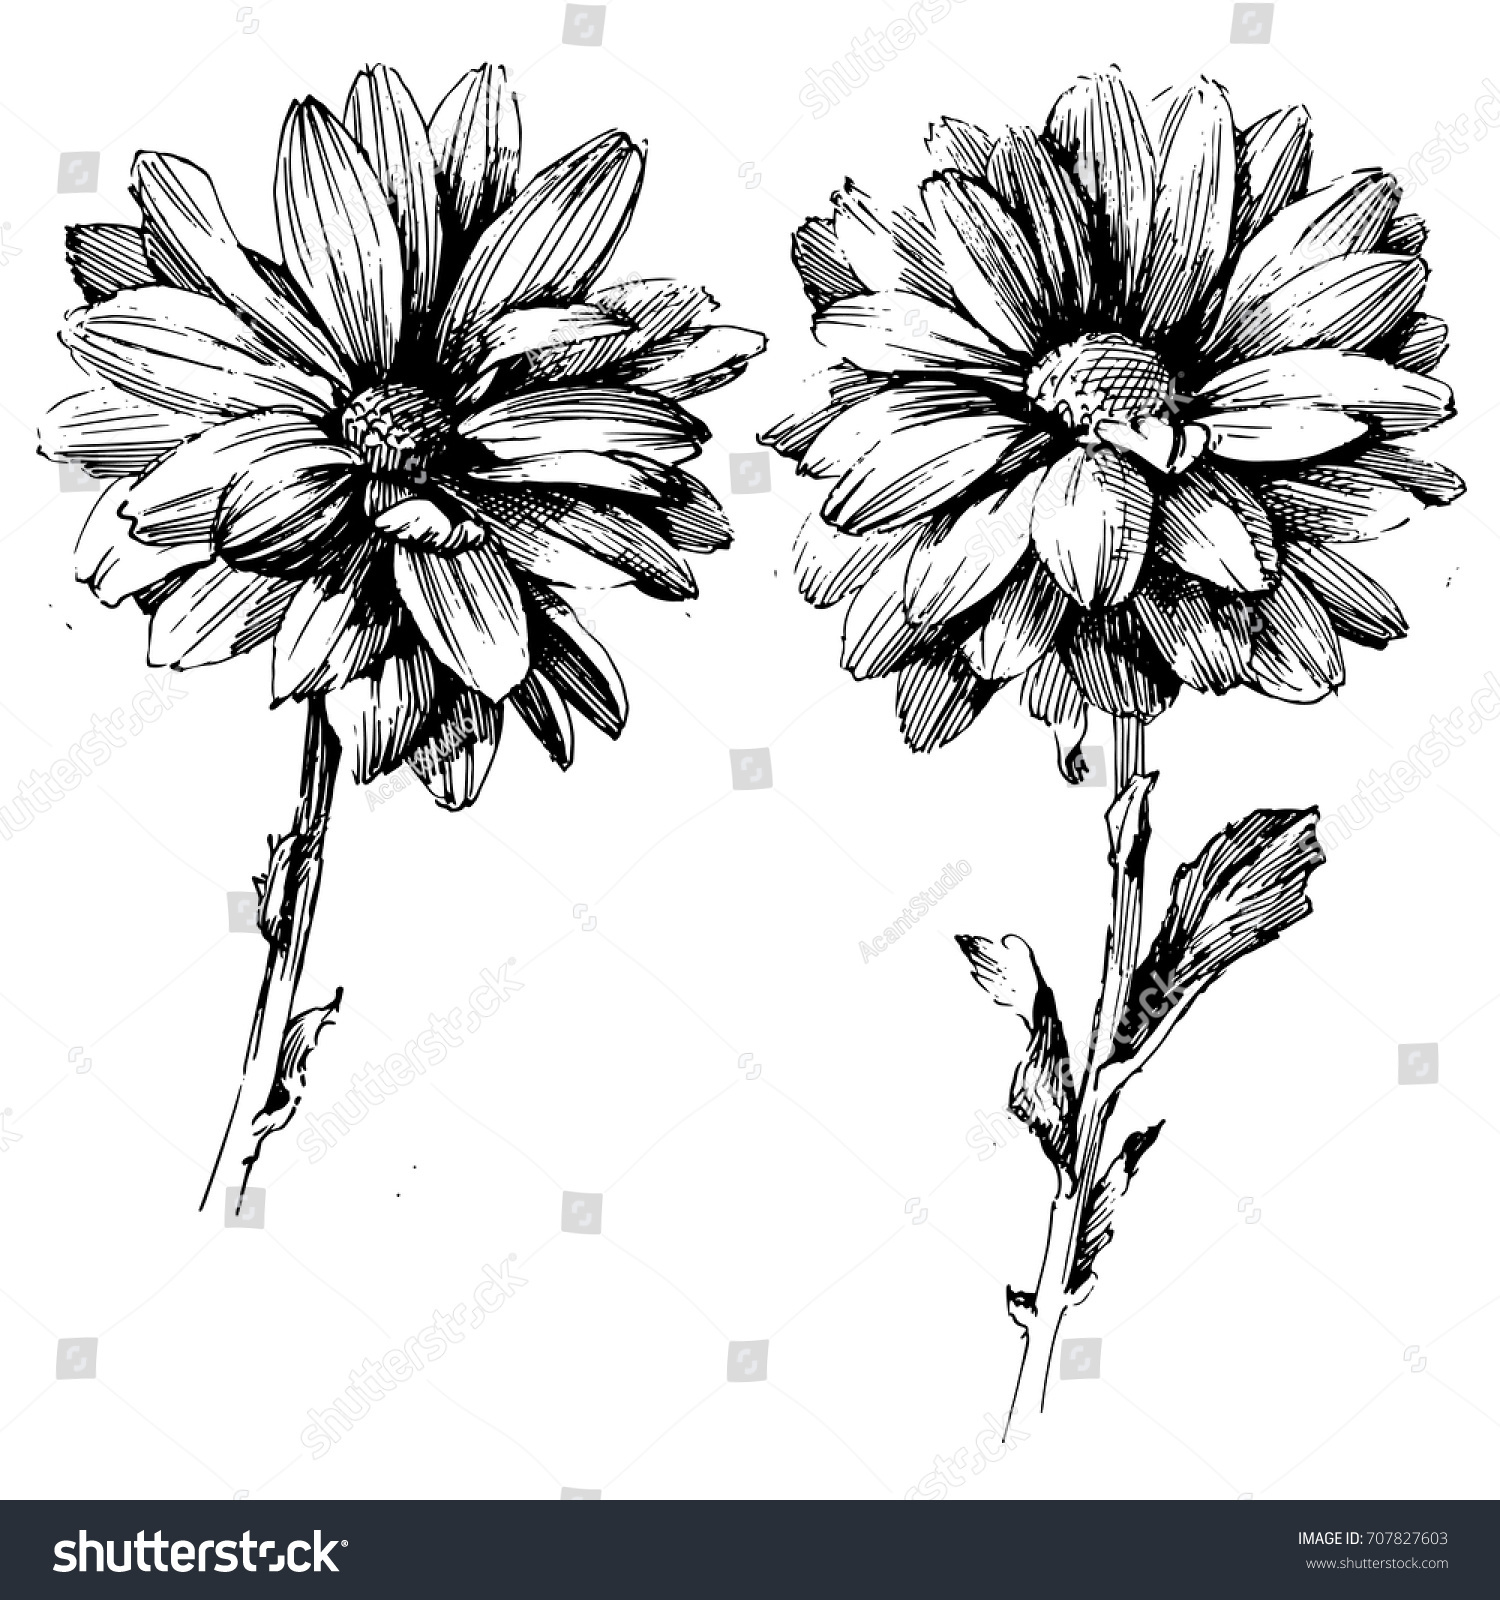 Line Drawing Flower Vector : Ink drawing flower vector illustration line stock